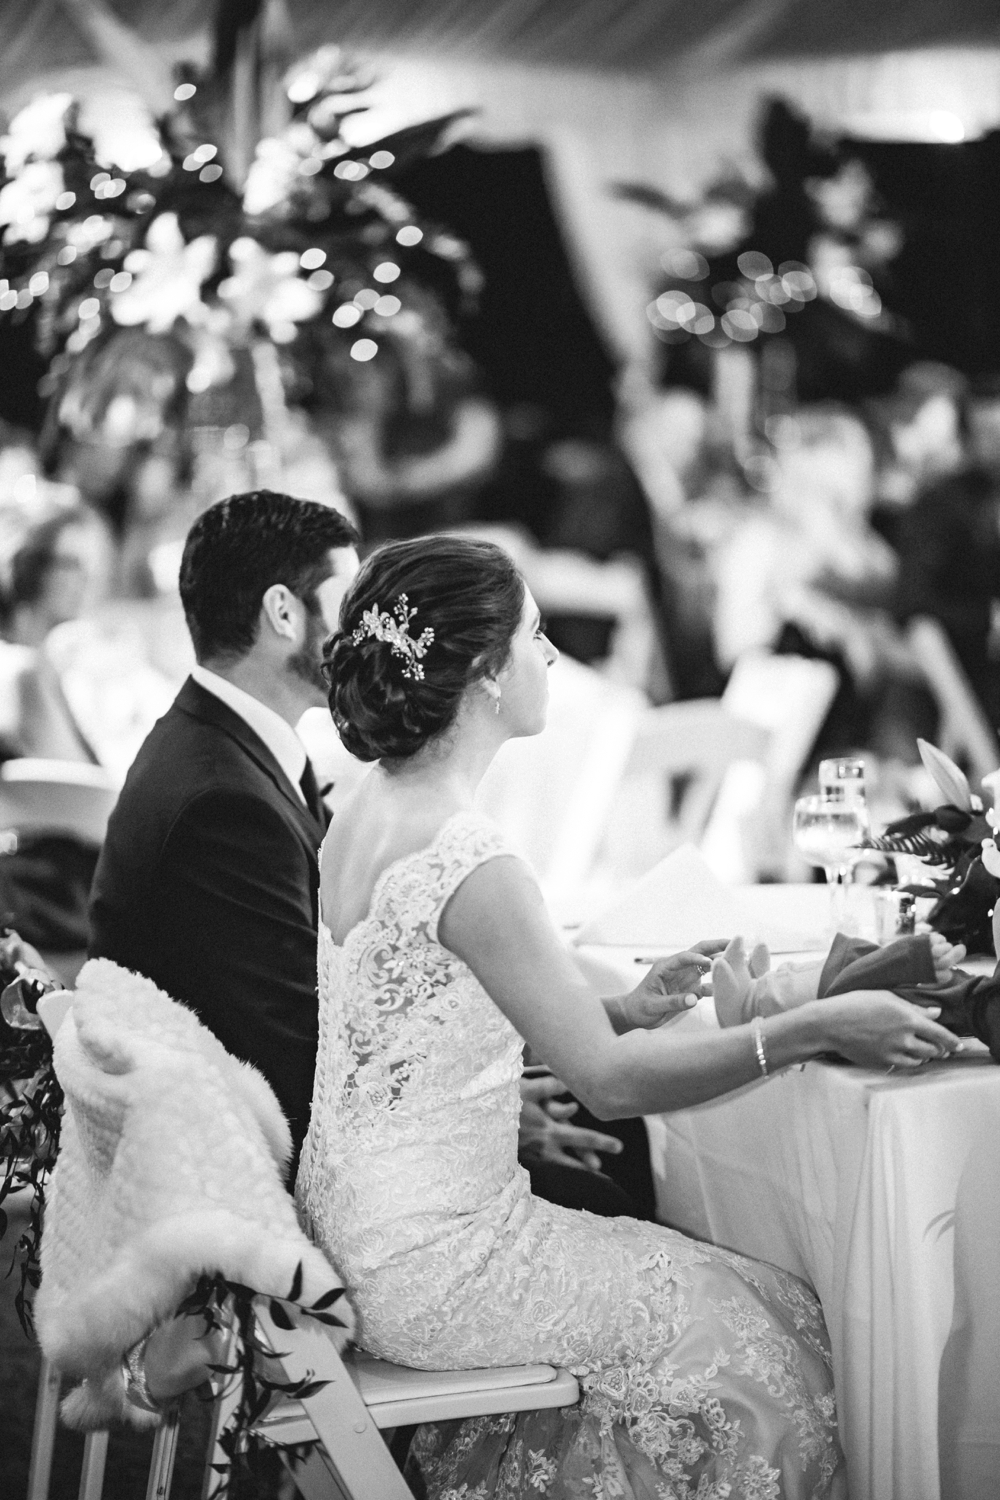 Matt Steeves Photography Casa Ybel Weddings Floral Artistry Sanibel_0174.jpg